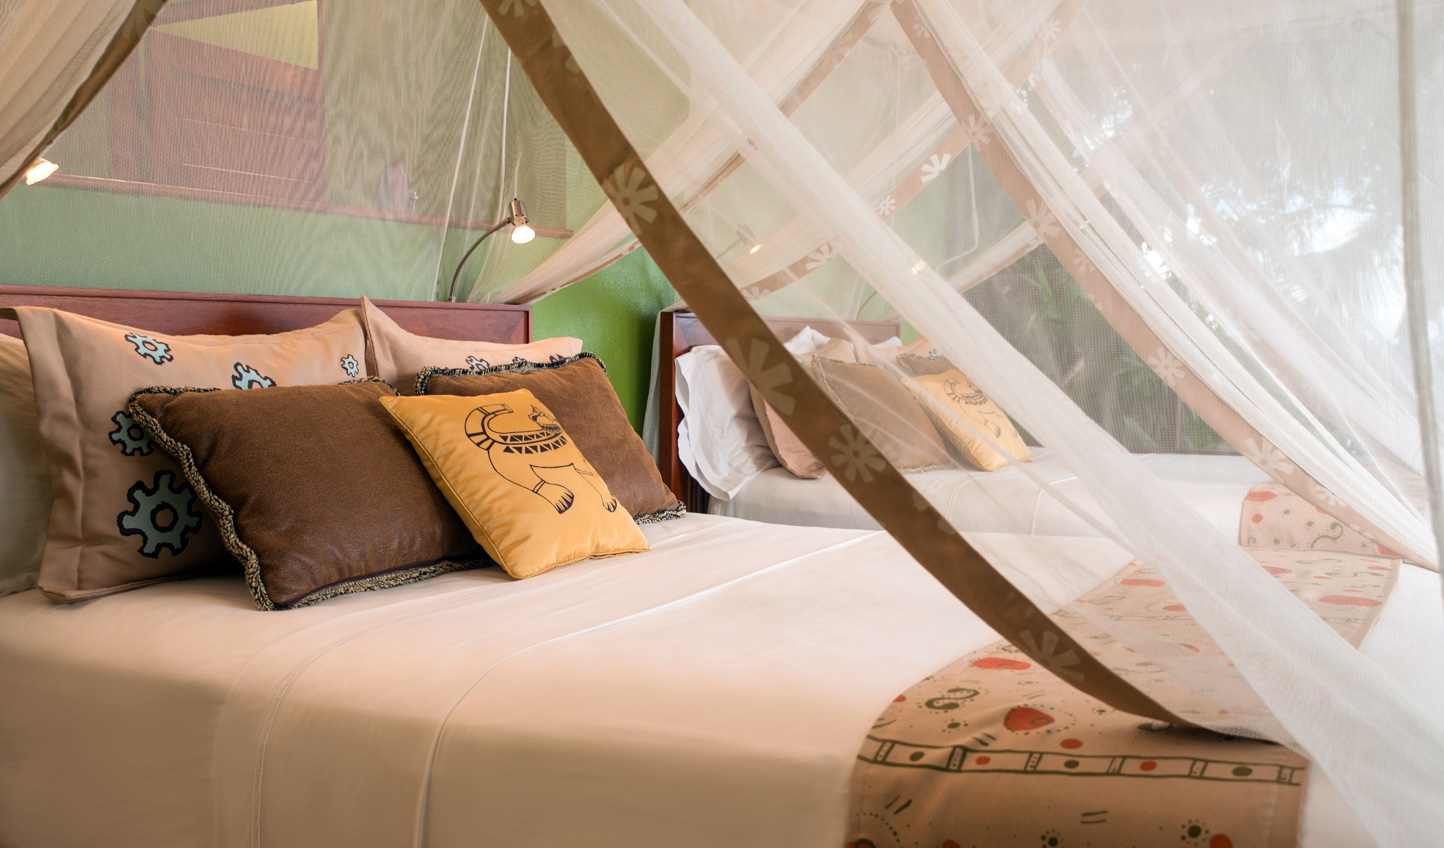 Fall into a peaceful slumber in your canopy bed